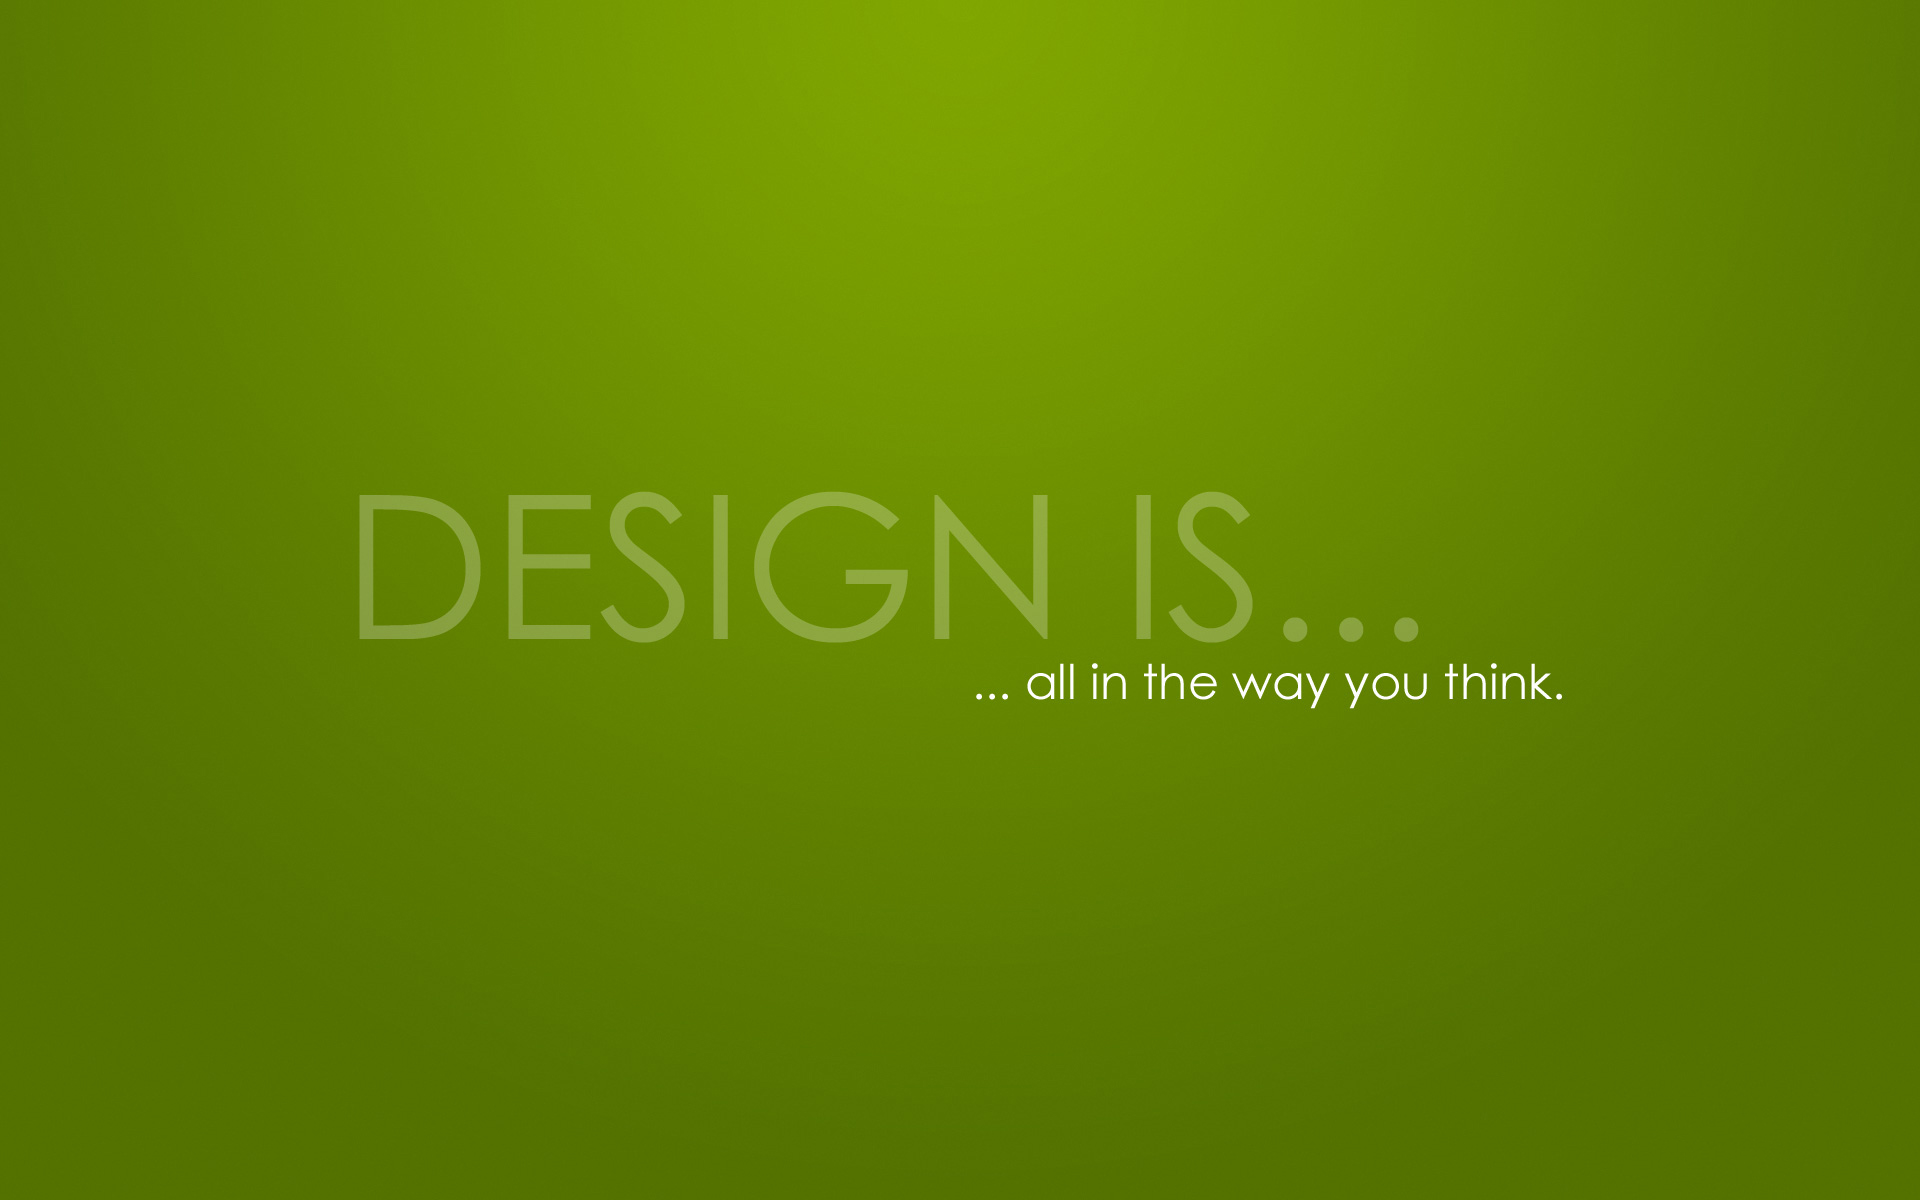 design wallpaper 1920 1200 is high definition wallpaper you can 1920x1200